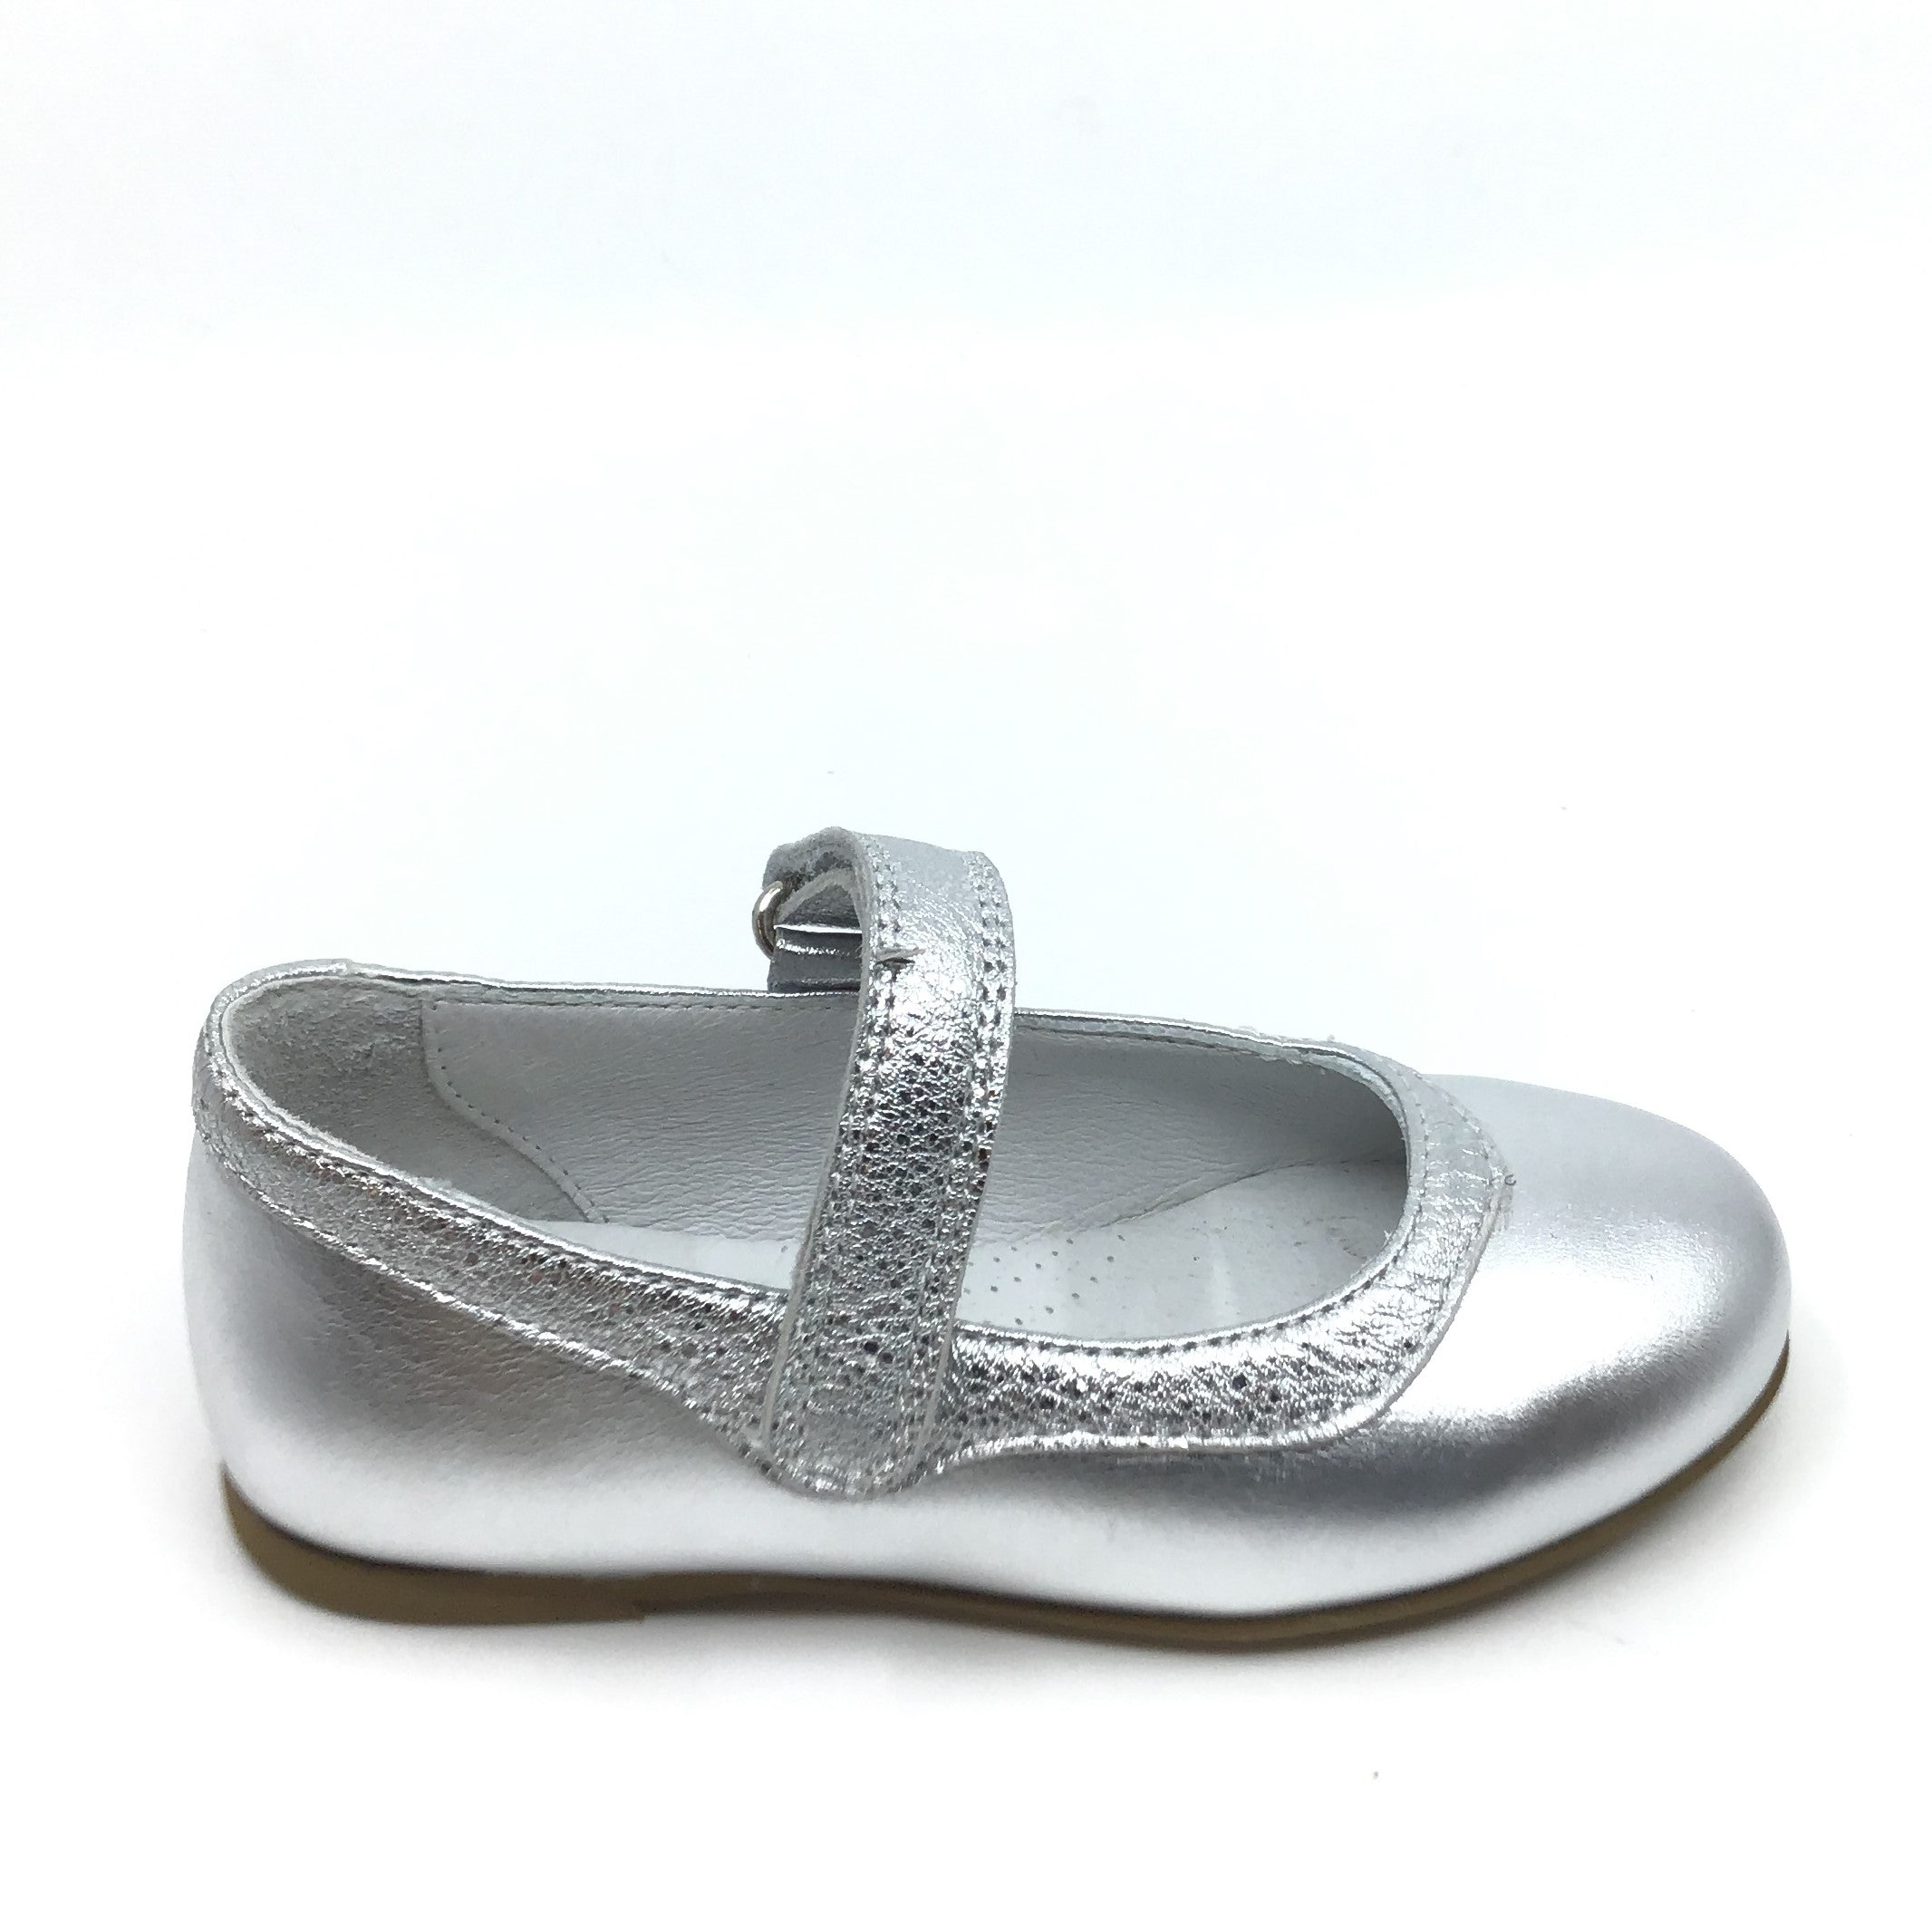 Zapeti Silver Mary Jane with Silver Trim